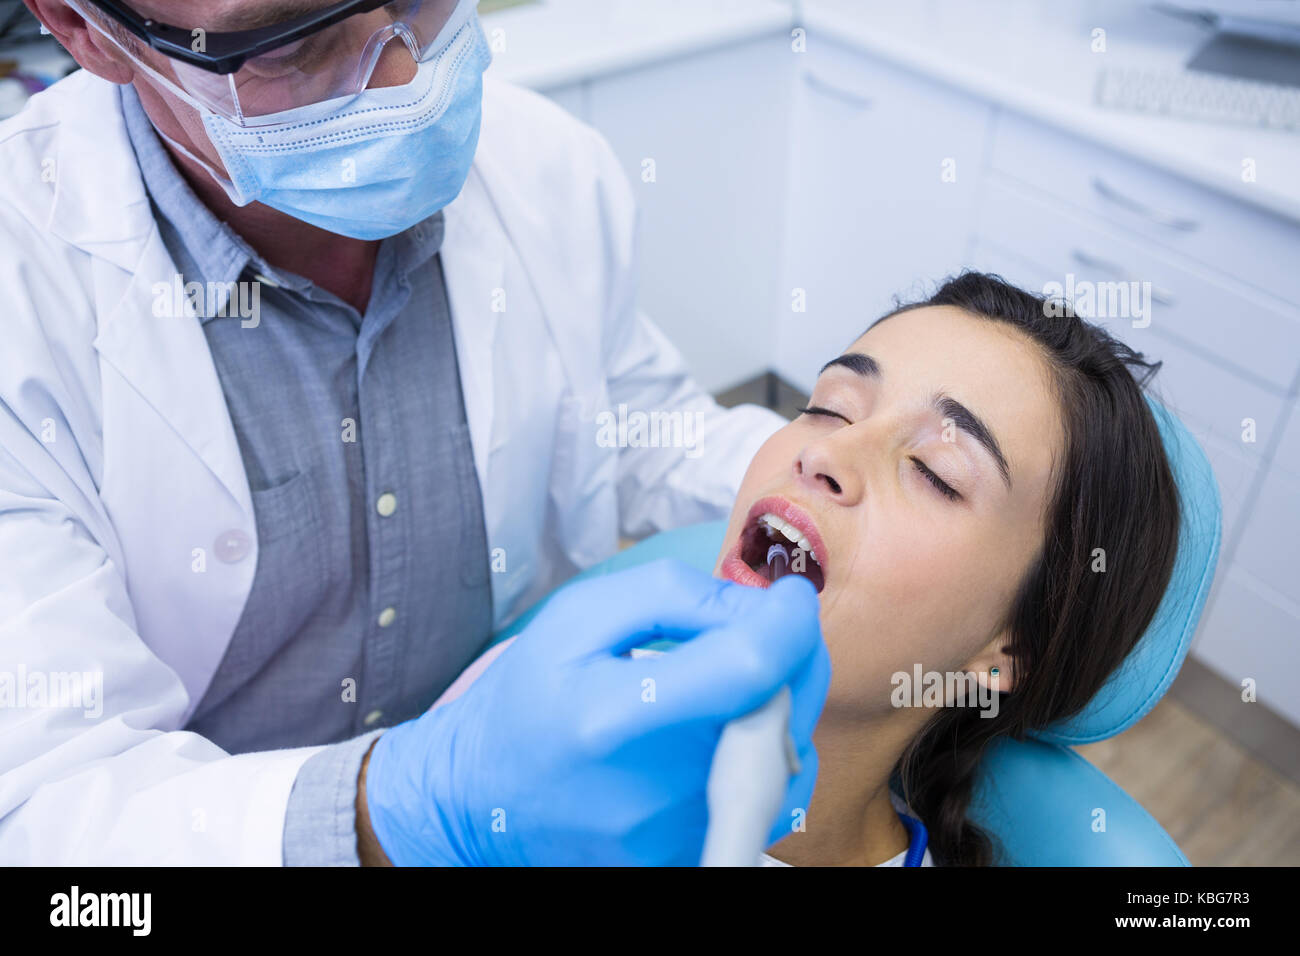 High angle view of dentist holding tools while treating woman at medical clinic - Stock Image